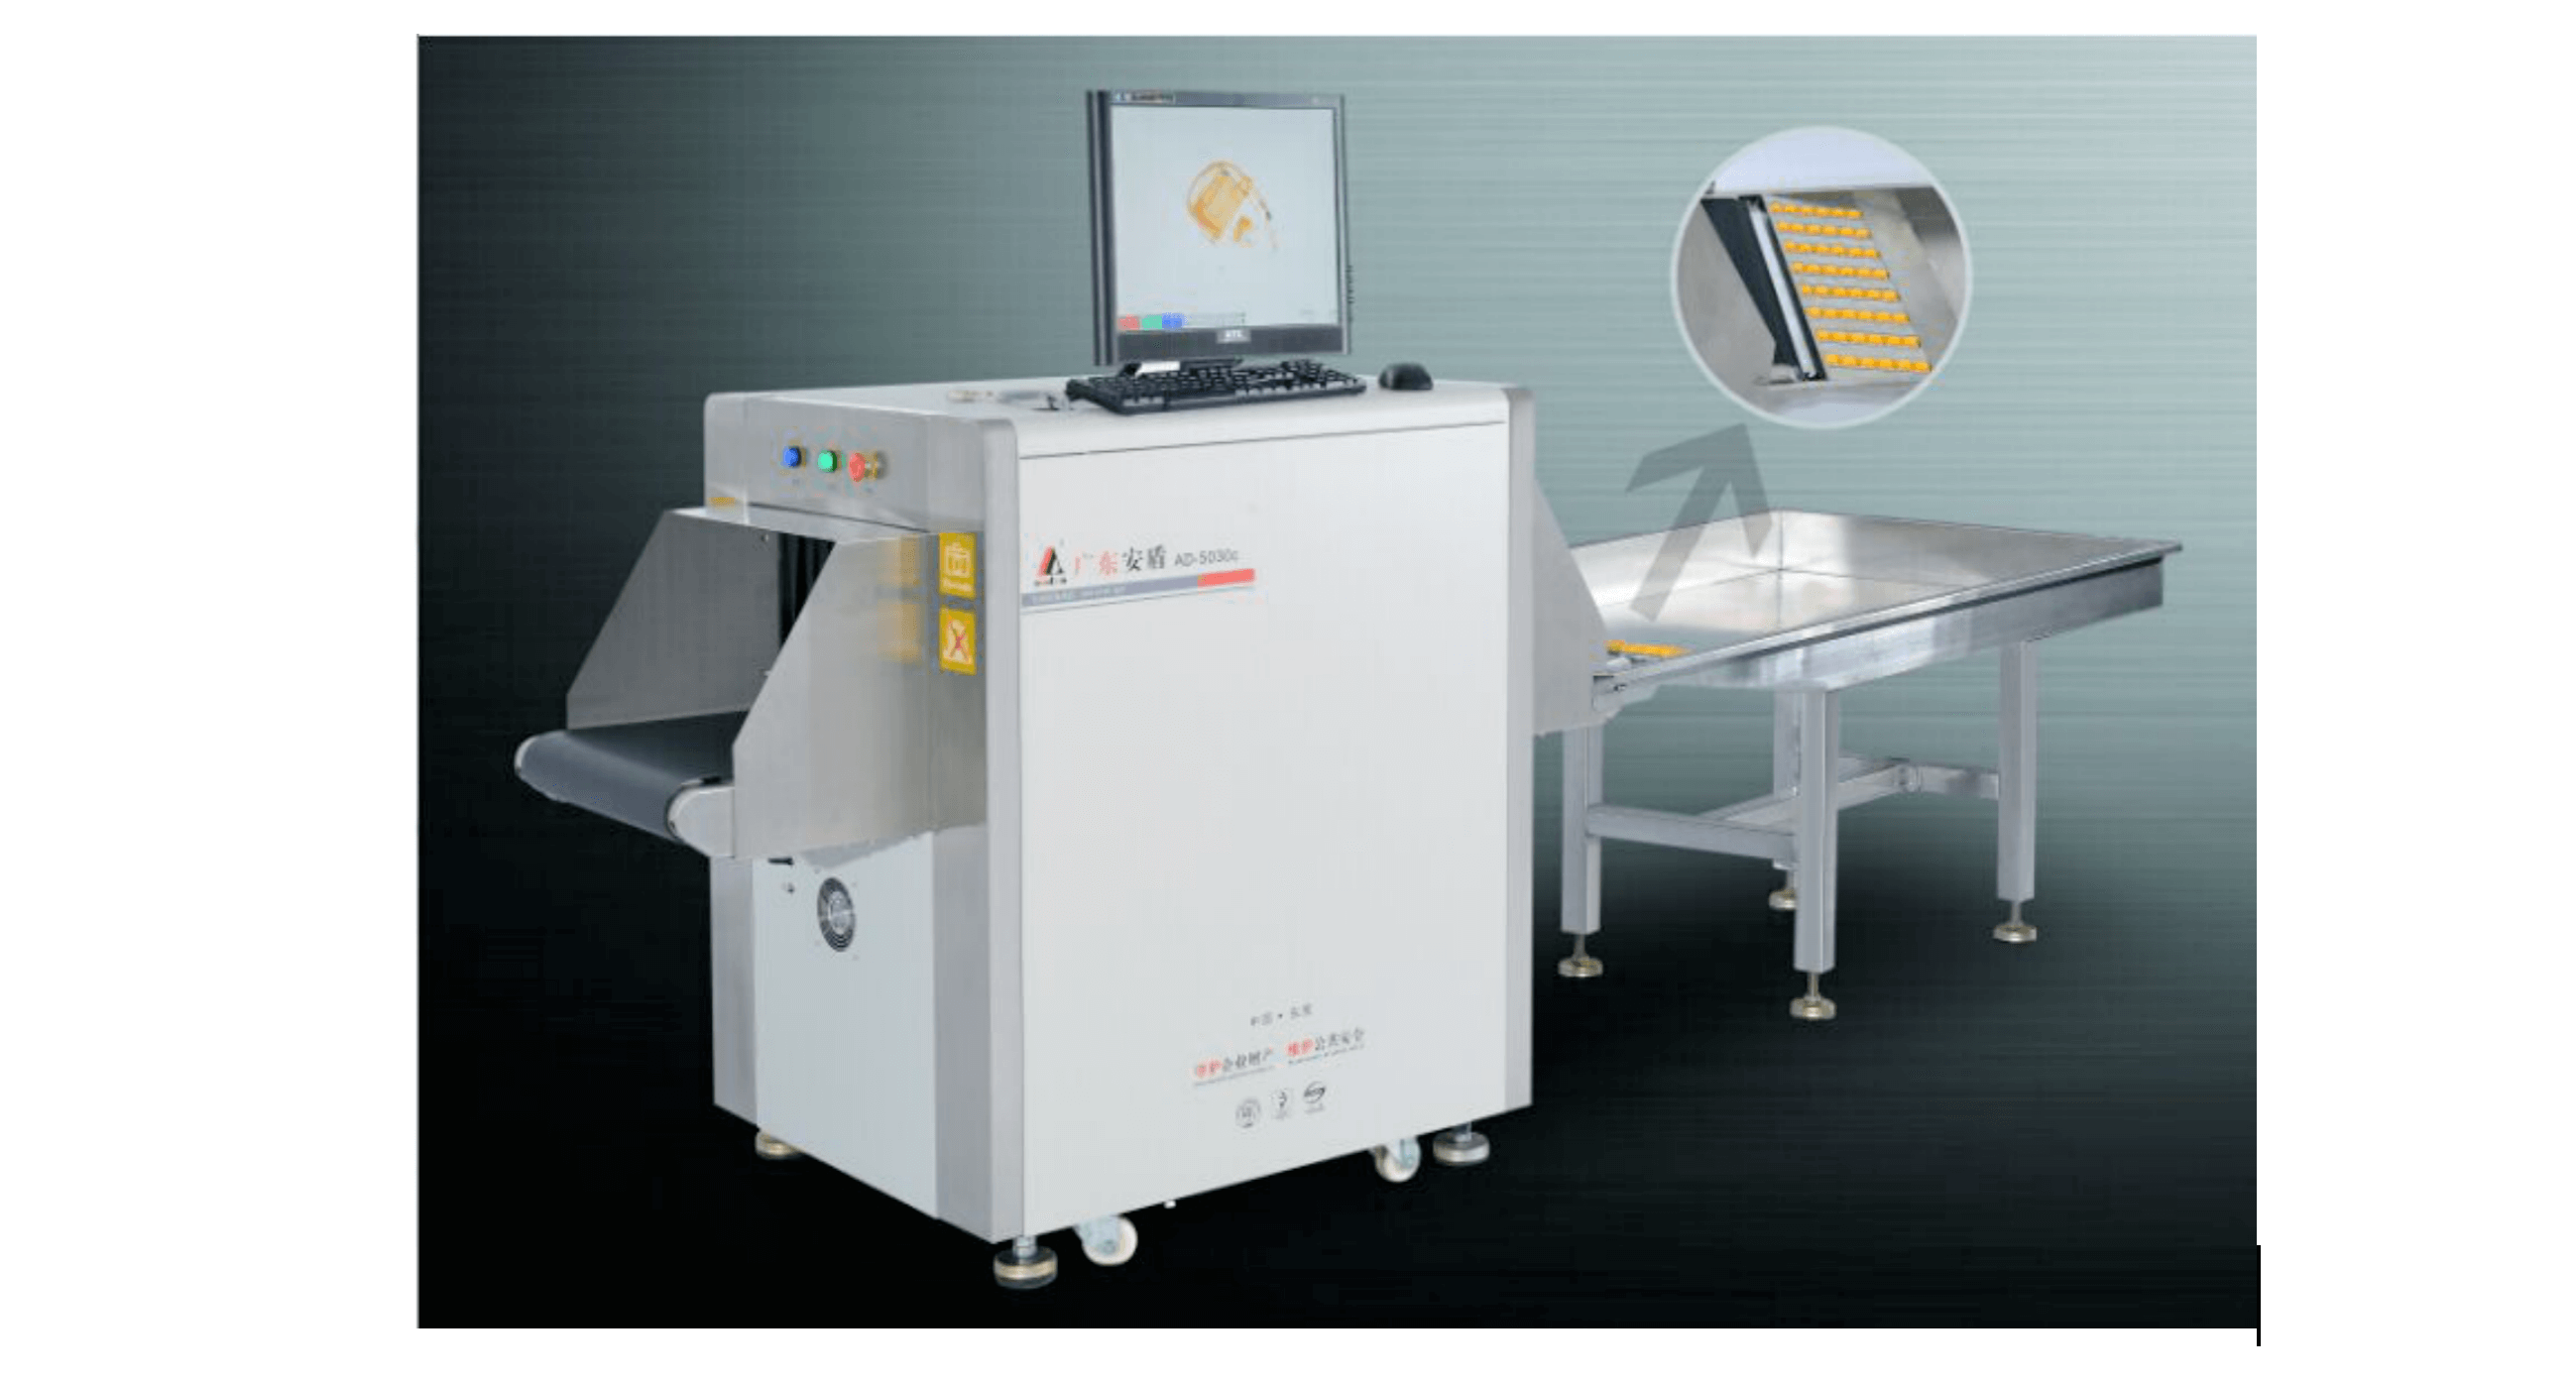 AD-5030 Desktop integrated X-ray security inspection equipment